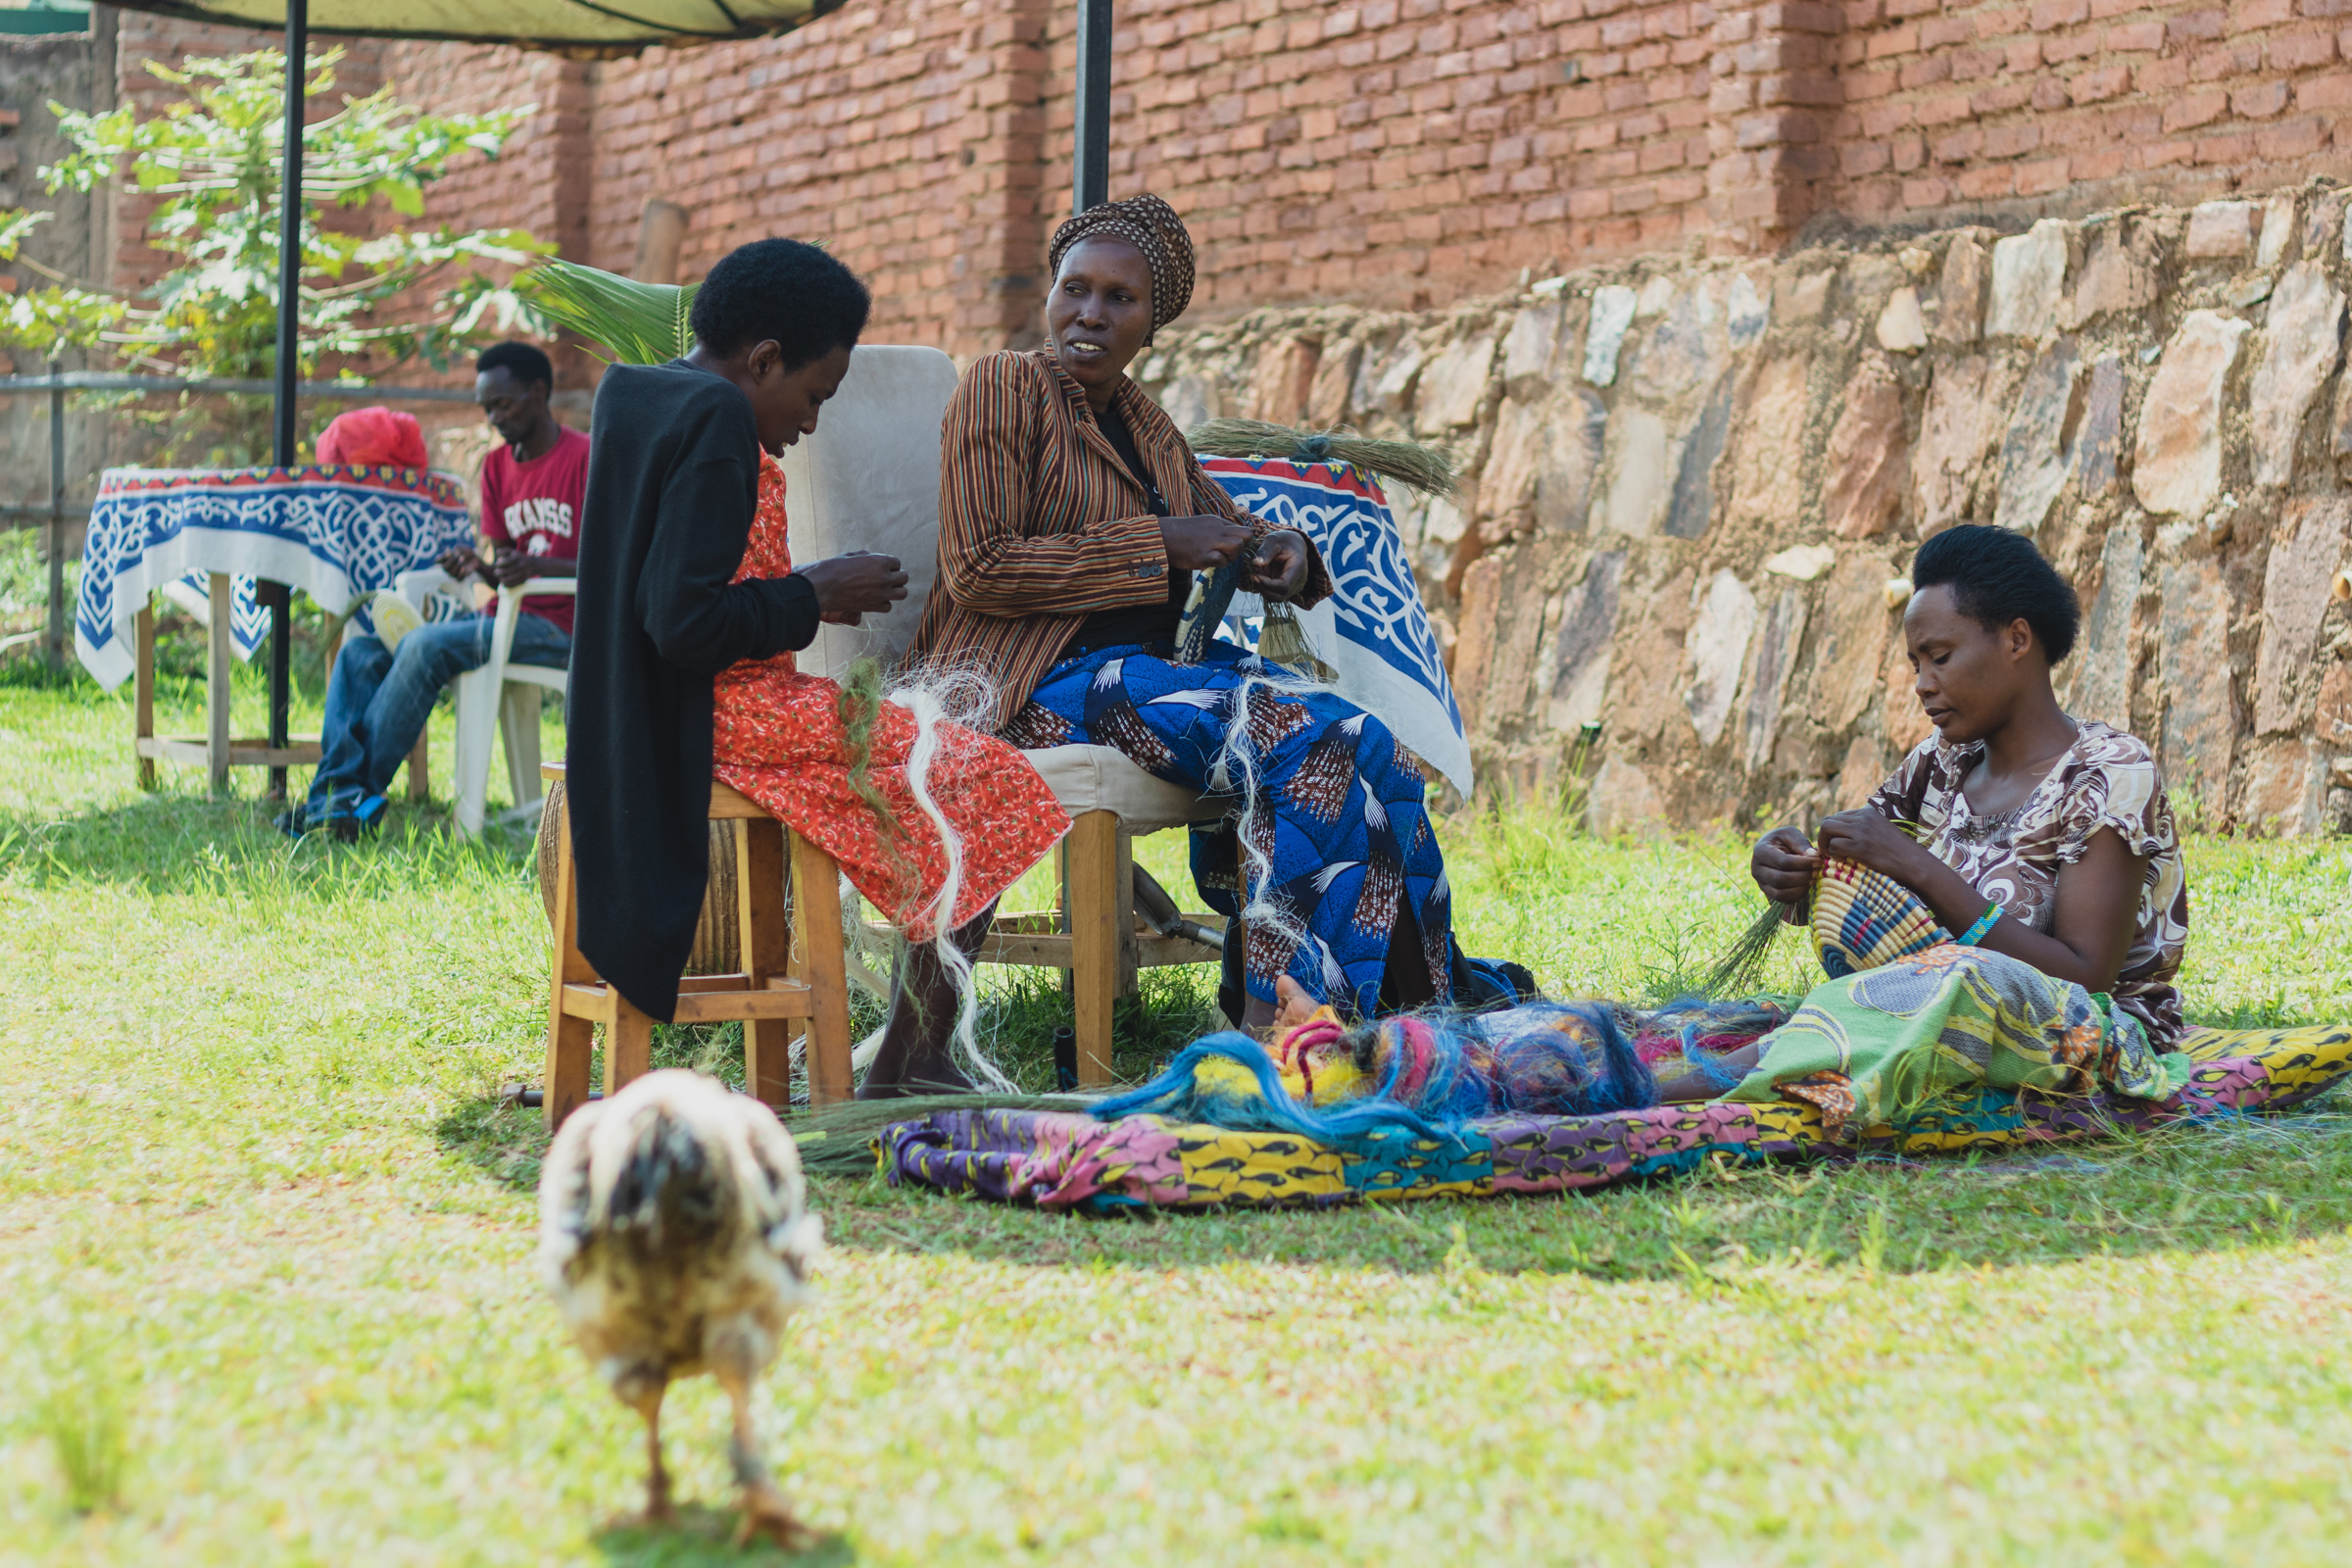 women with disabilities weaving baskets for an income in rwanda